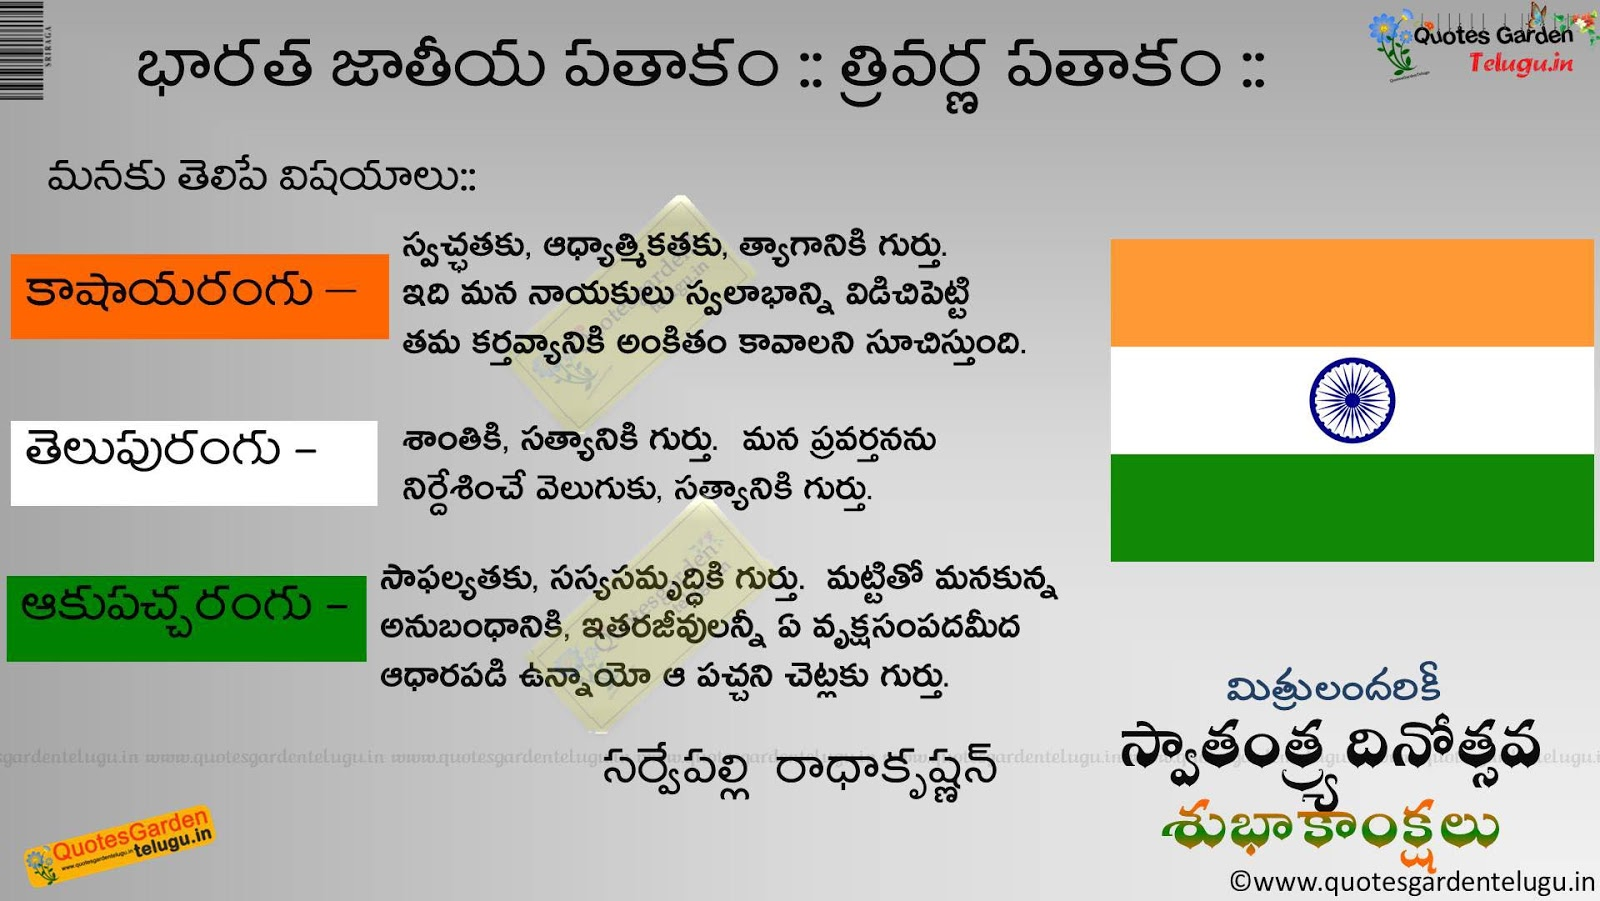 Republic day essay in telugu